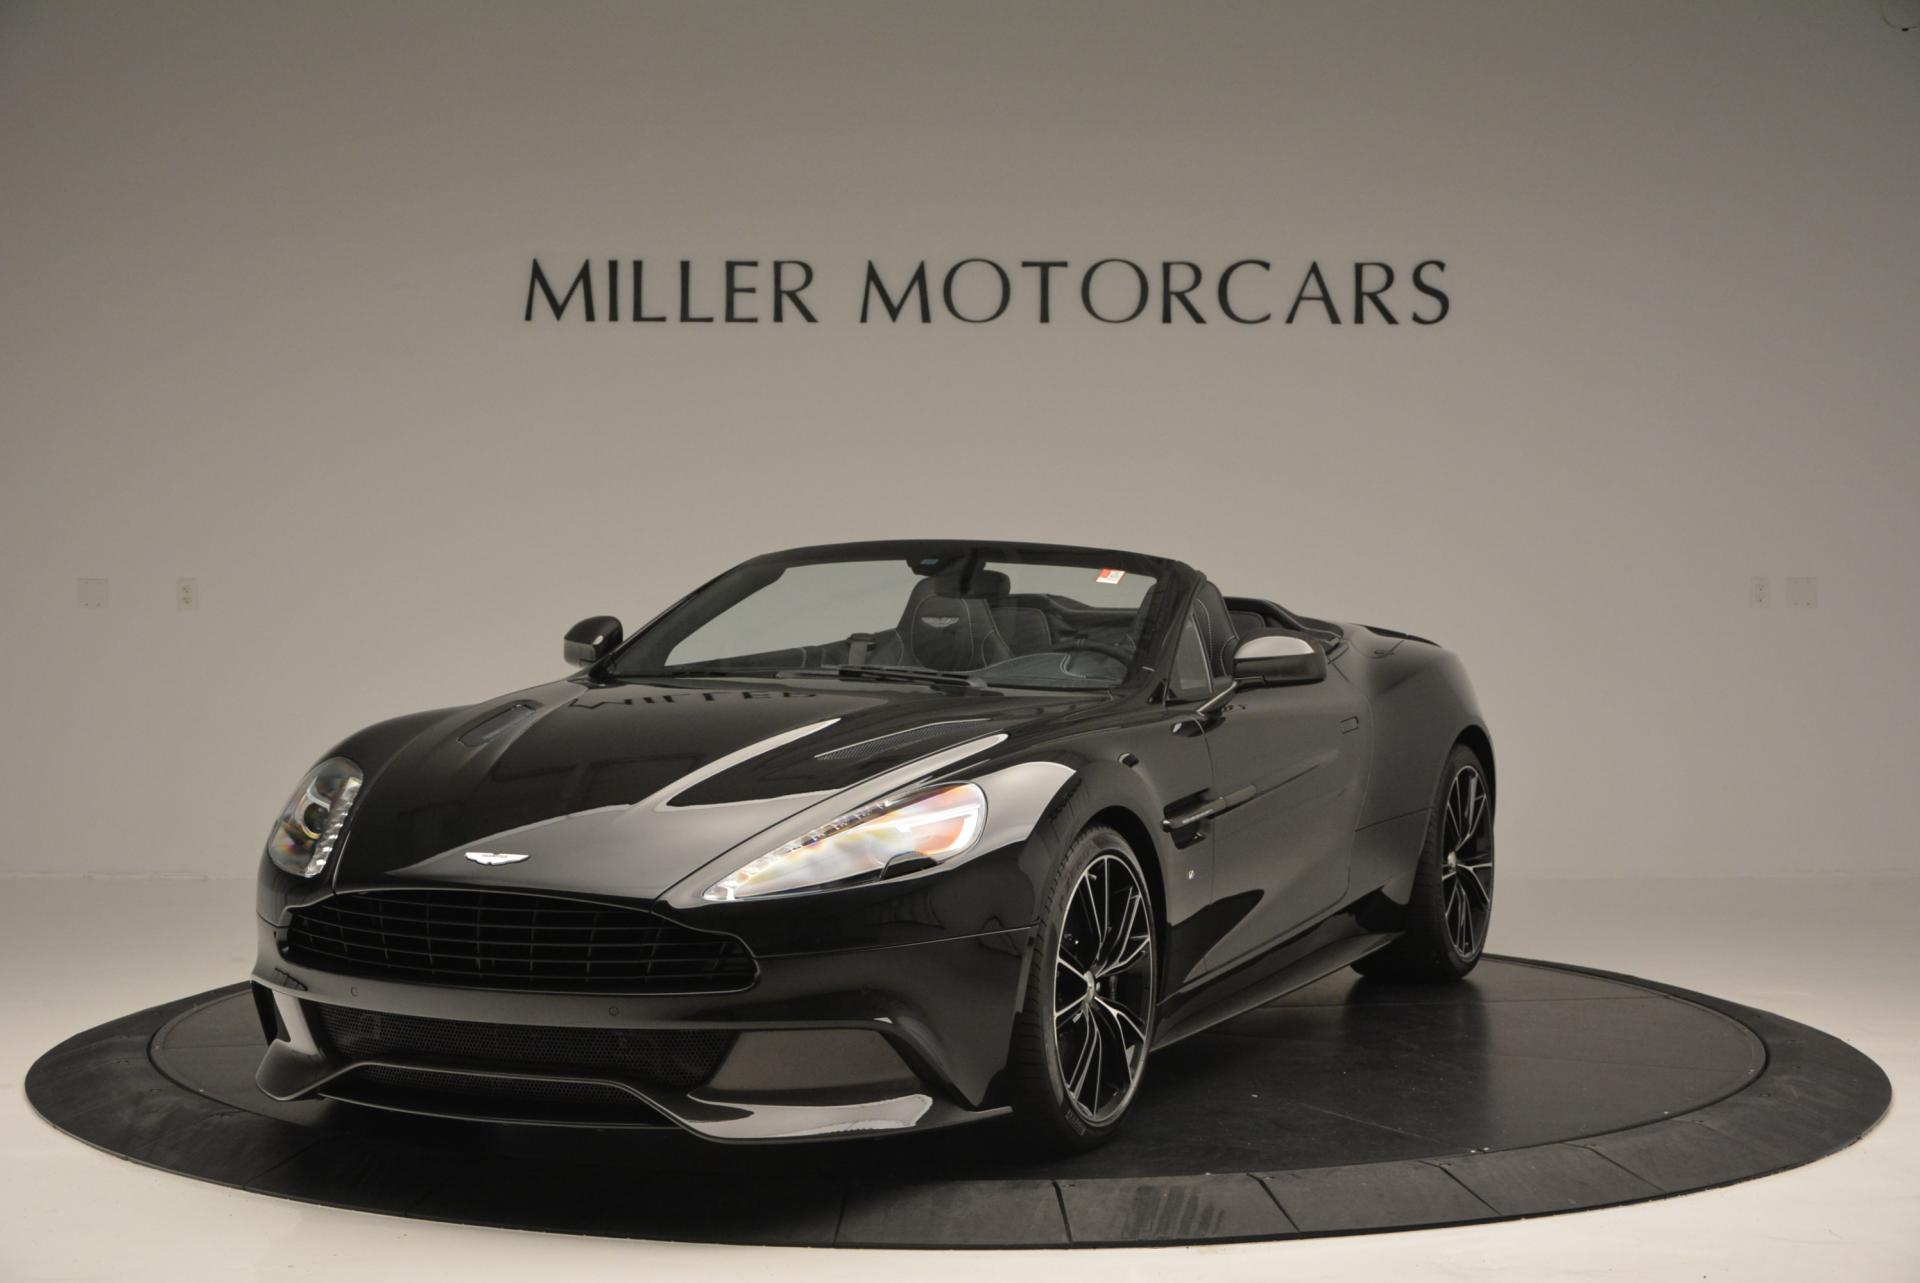 New 2016 Aston Martin Vanquish Volante for sale Sold at Aston Martin of Greenwich in Greenwich CT 06830 1